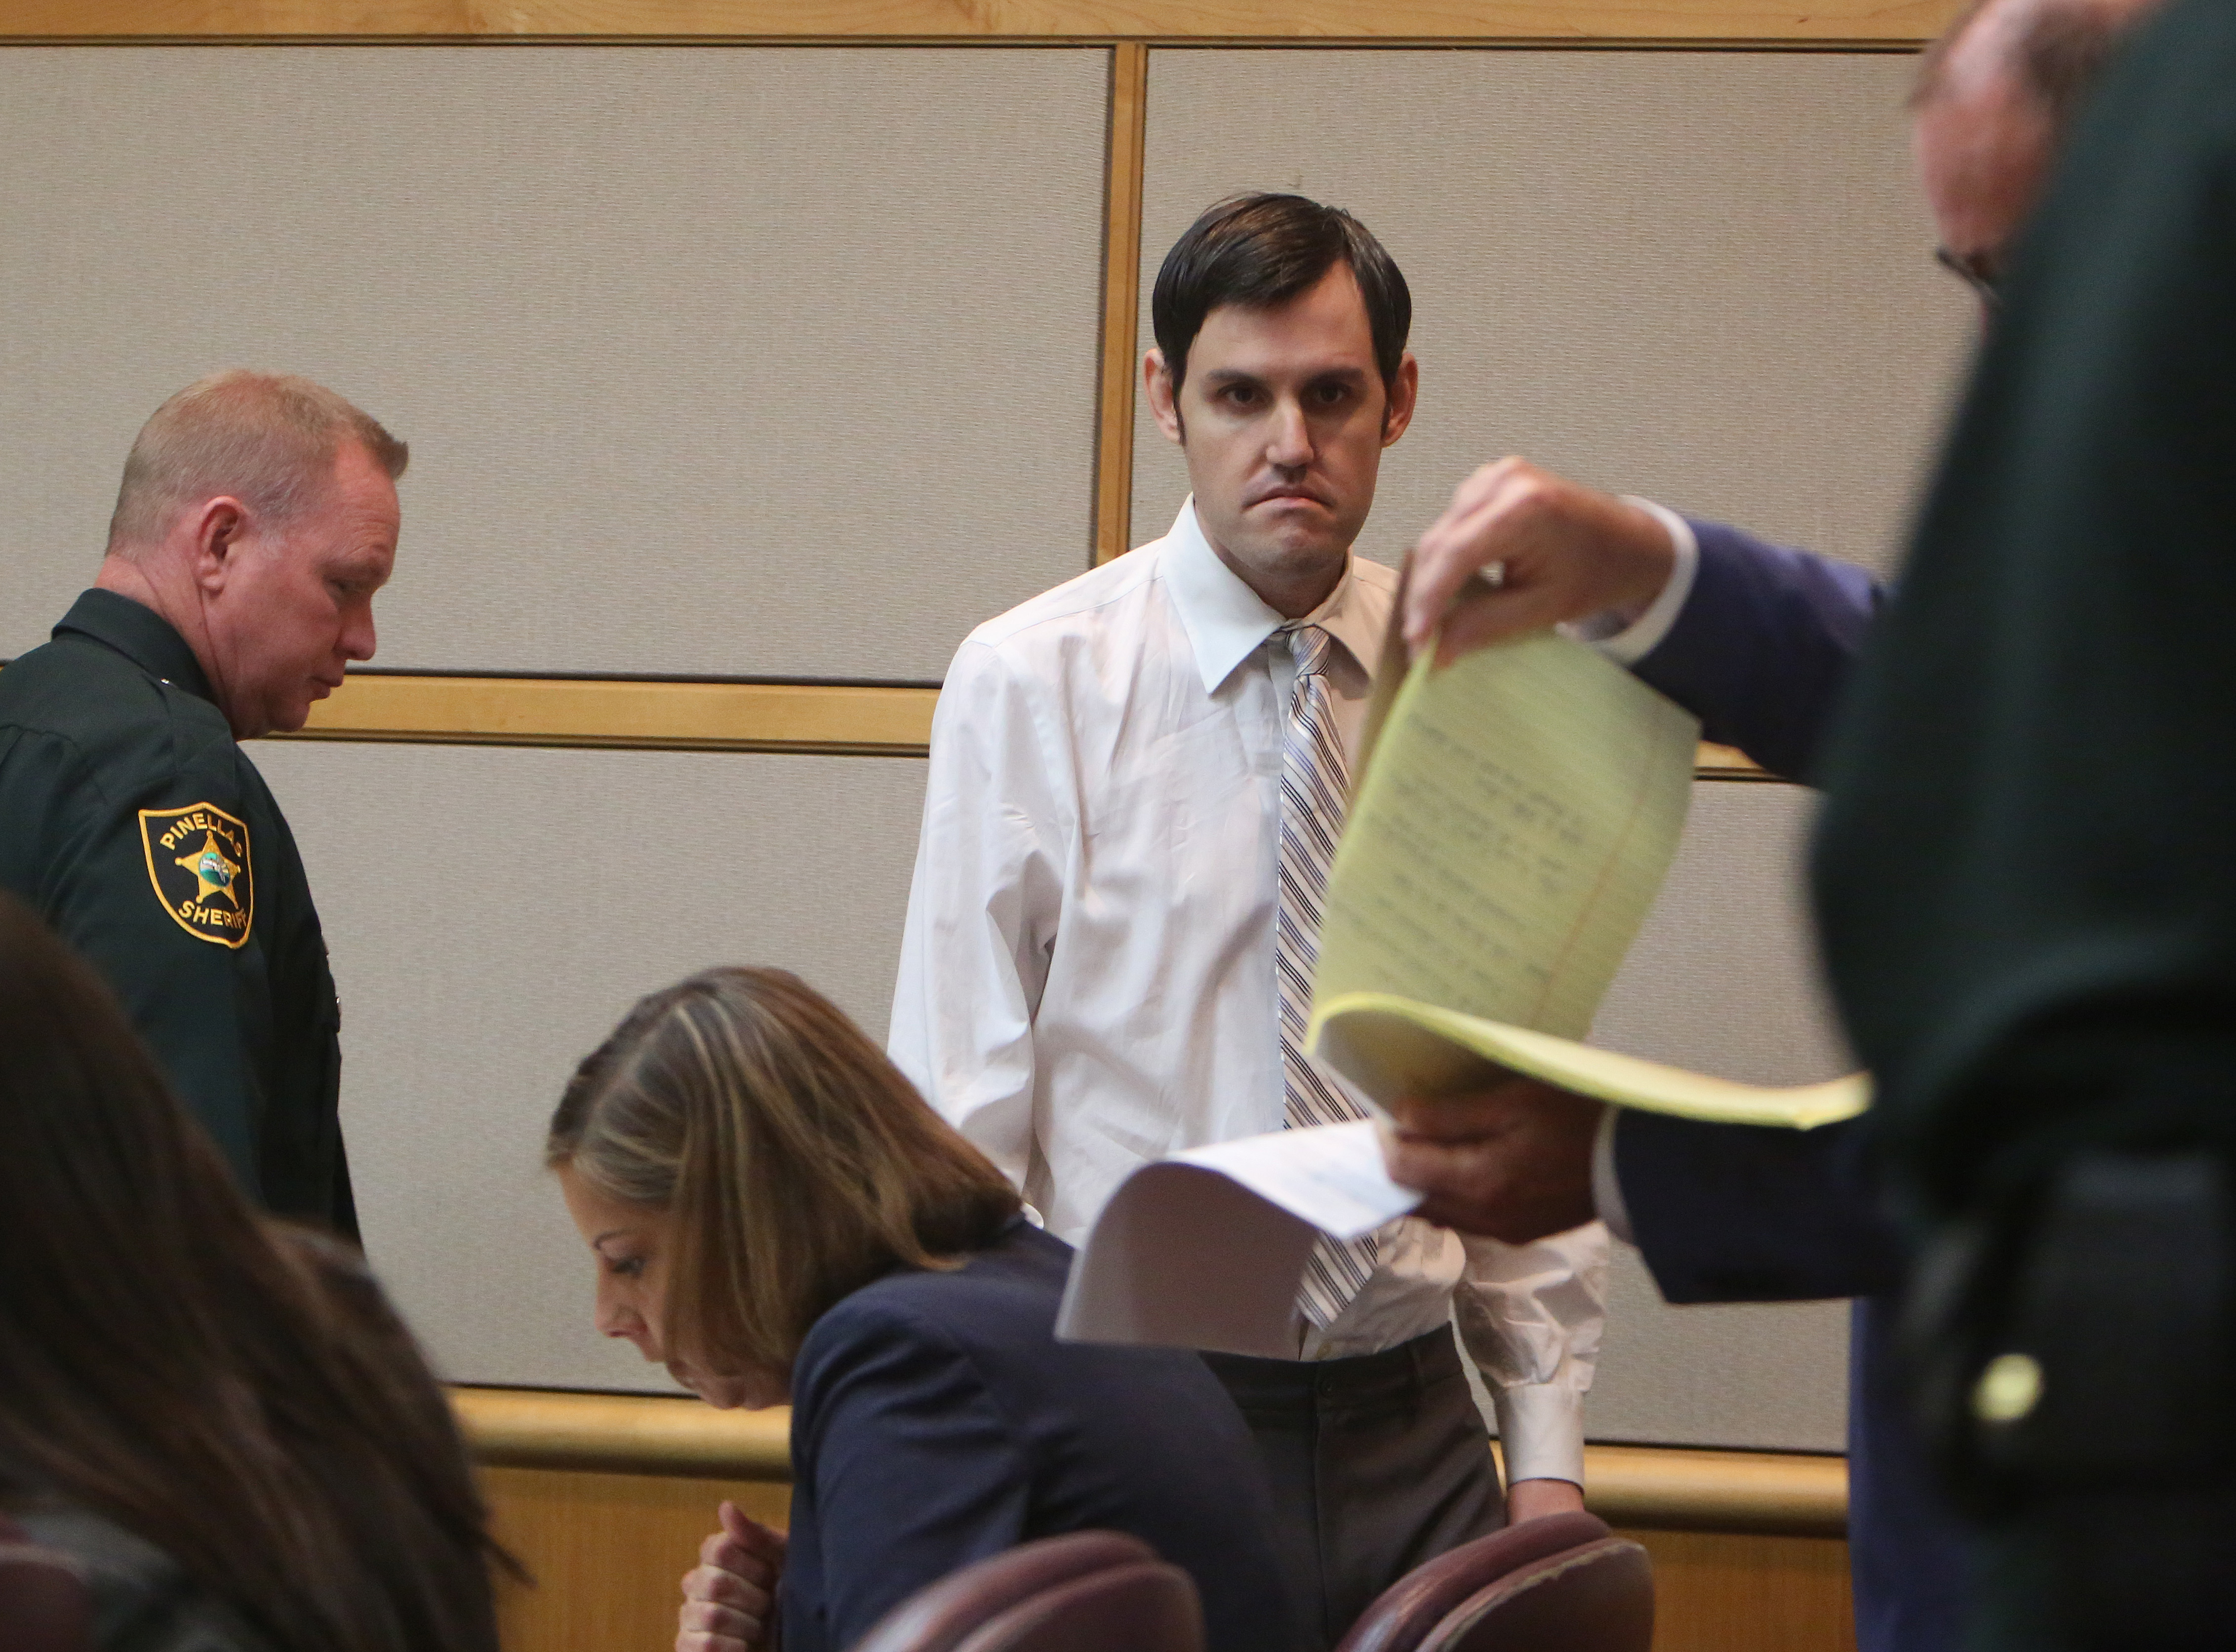 The Trial of John Jonchuck, Day 17: Watch as the prosecution brings